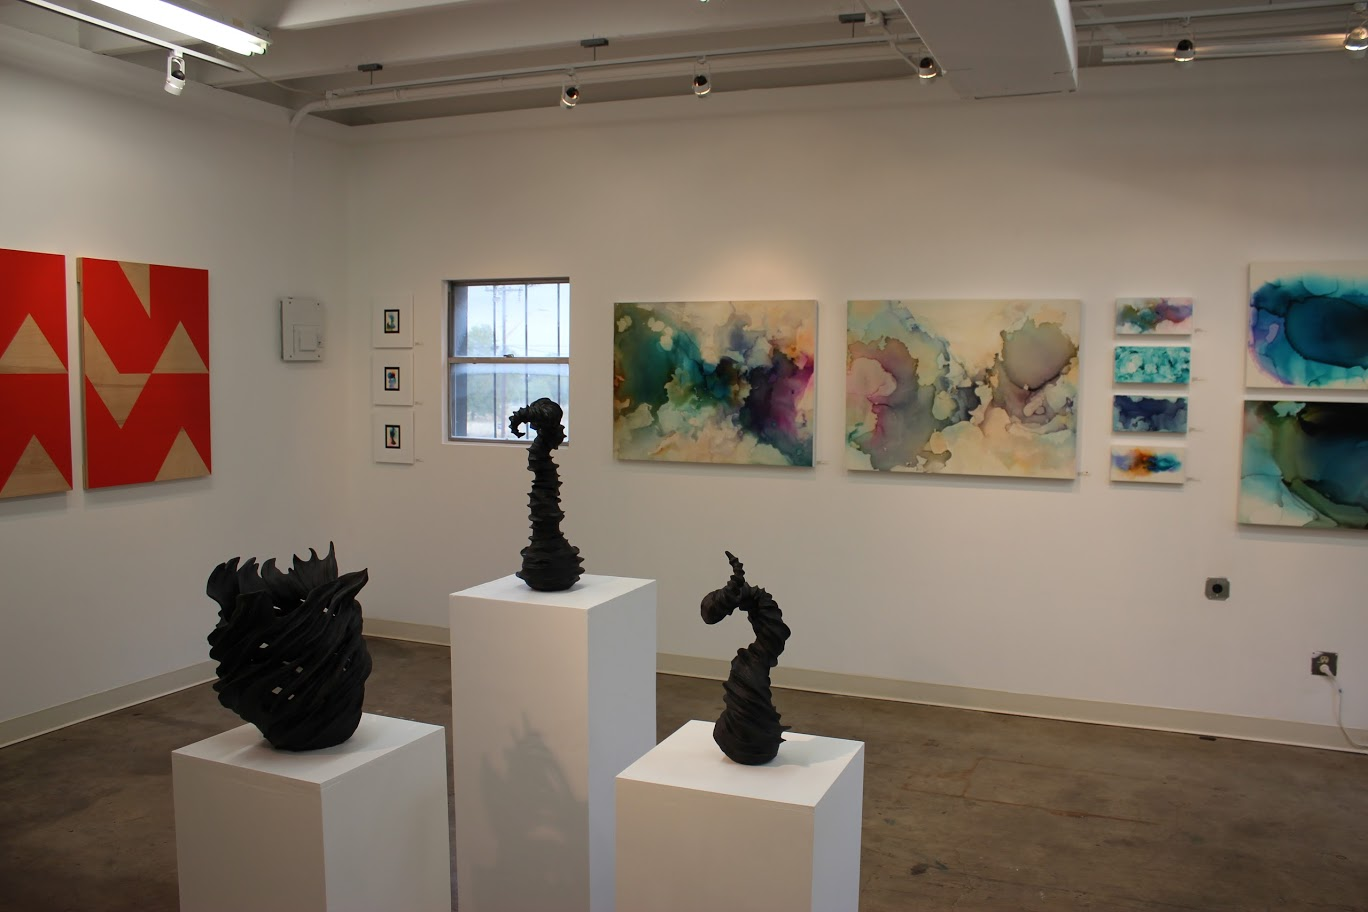 East Austin Studio Tour,   Slugfest Gallery  2014, Austin, TX, 11/15-11/16 and 11/22-11/23, Shown with  Polly Lanning Sparrow  (left) and  Judith Simonds  (center).  Genesis I and II  and other works on the far wall are by Andrea Pramuk.